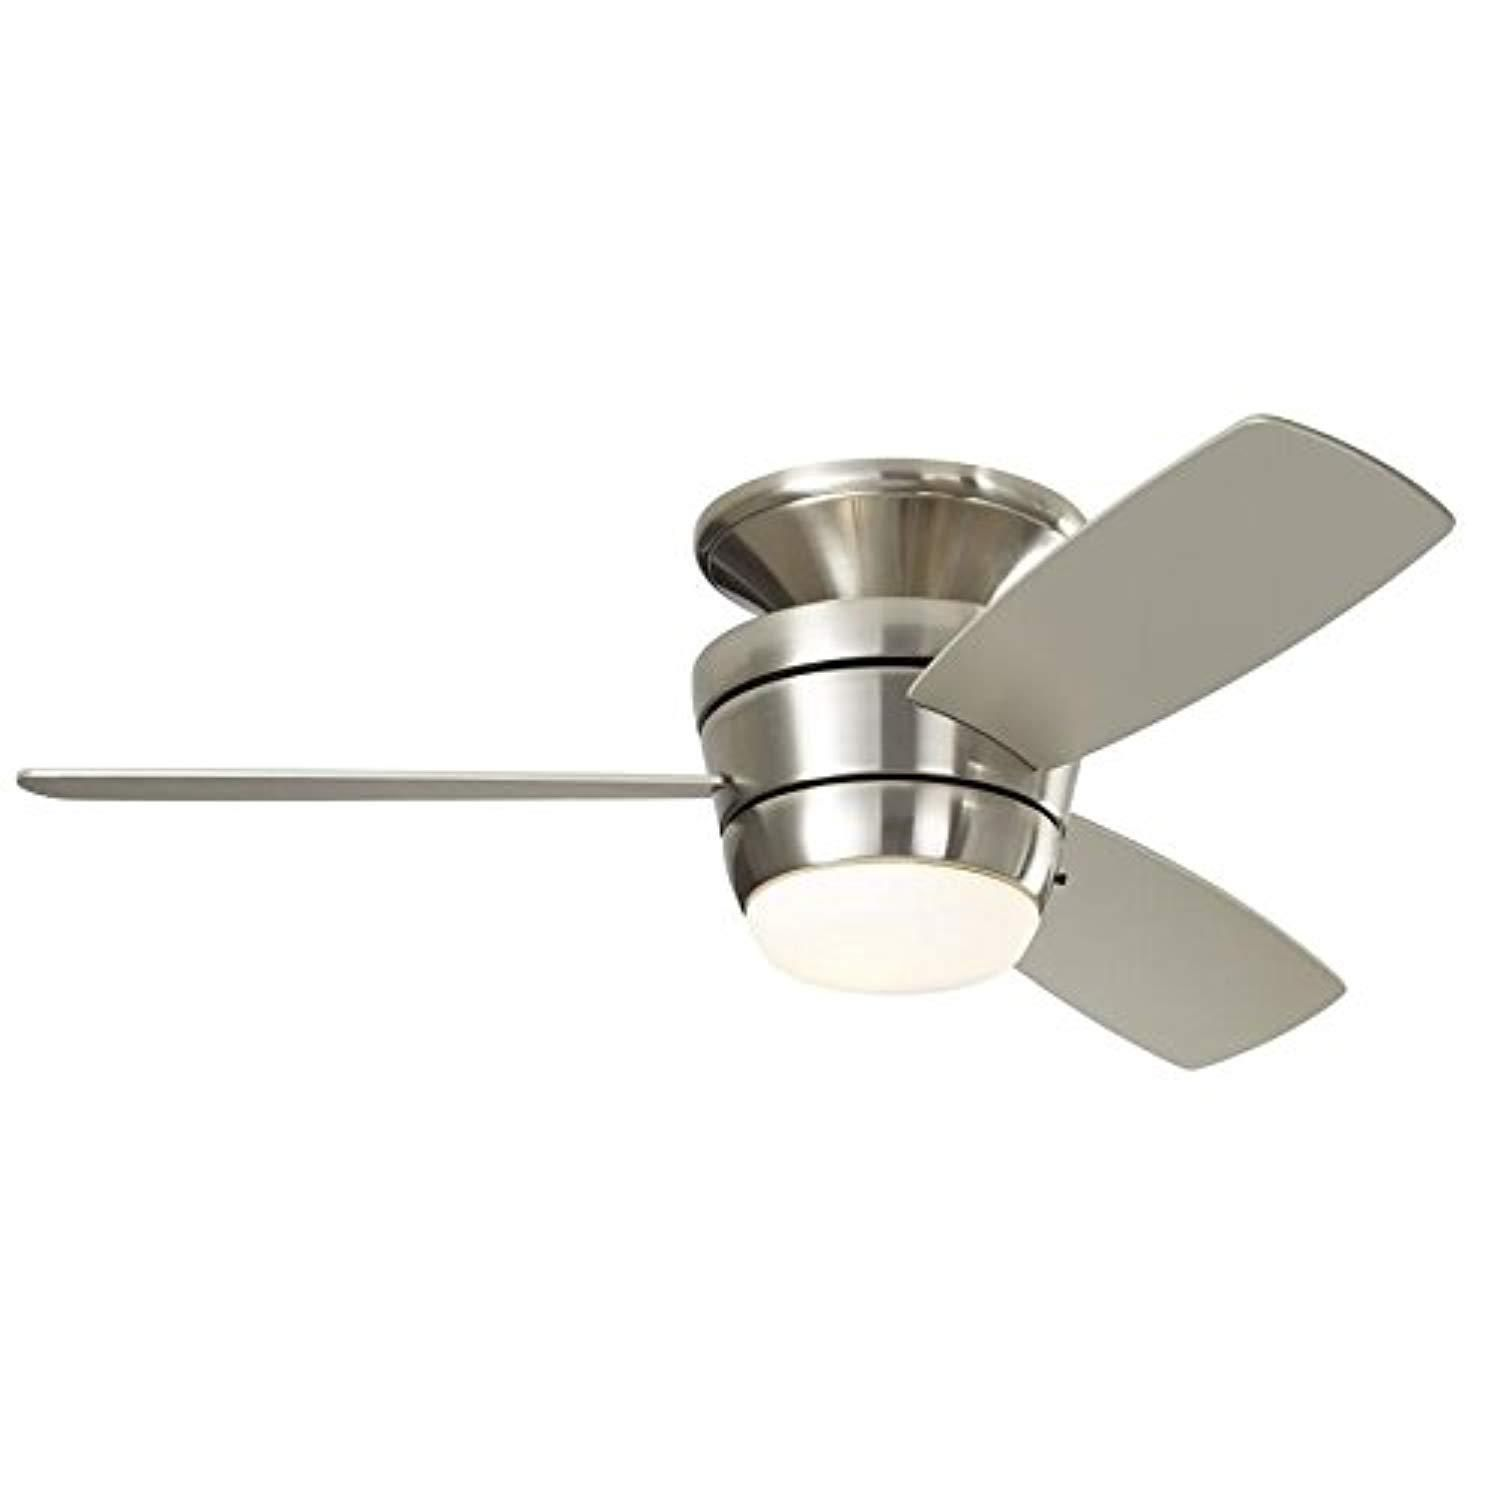 Harbor Breeze Mazon 44 In Brushed Nickel Led Indoor Flush Mount Ceiling Fan With Light Kit And Remote 3 Blade In 2021 Ceiling Fan With Light Fan Light Ceiling Fan 44 inch ceiling fan with light